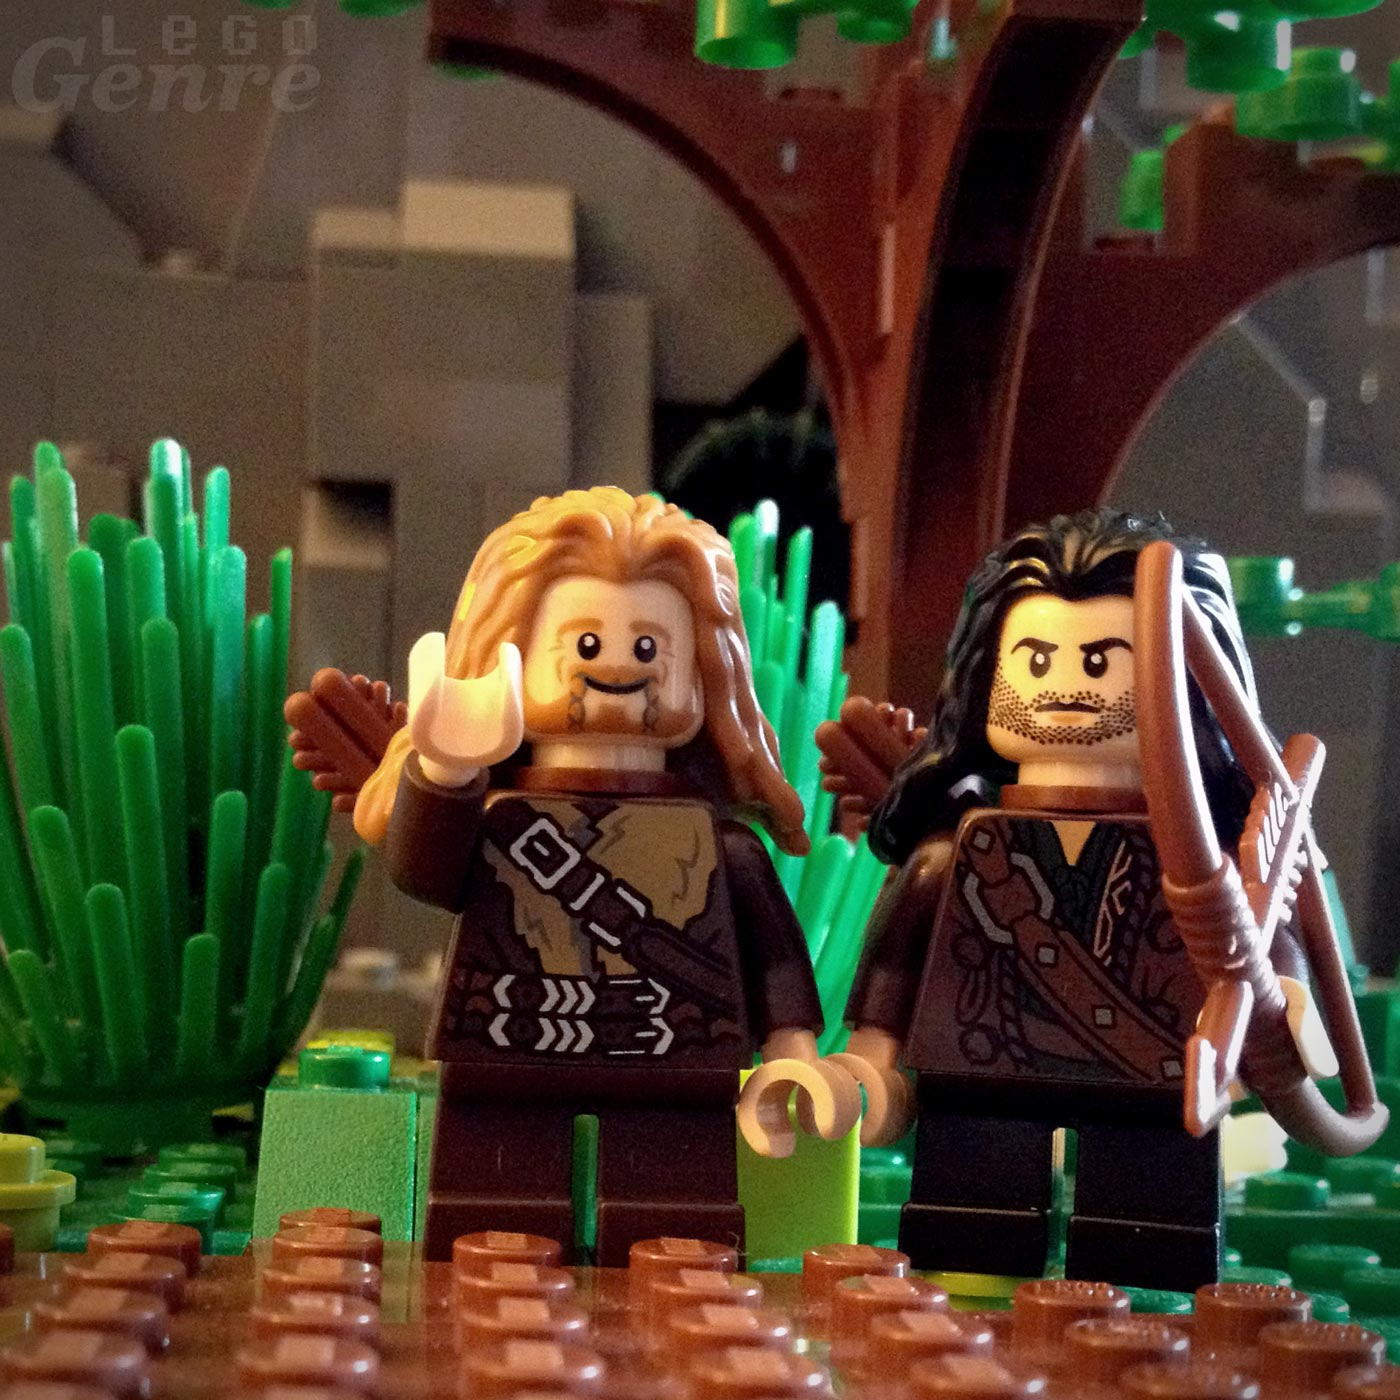 LegoGenre 00323: Fili and Kili